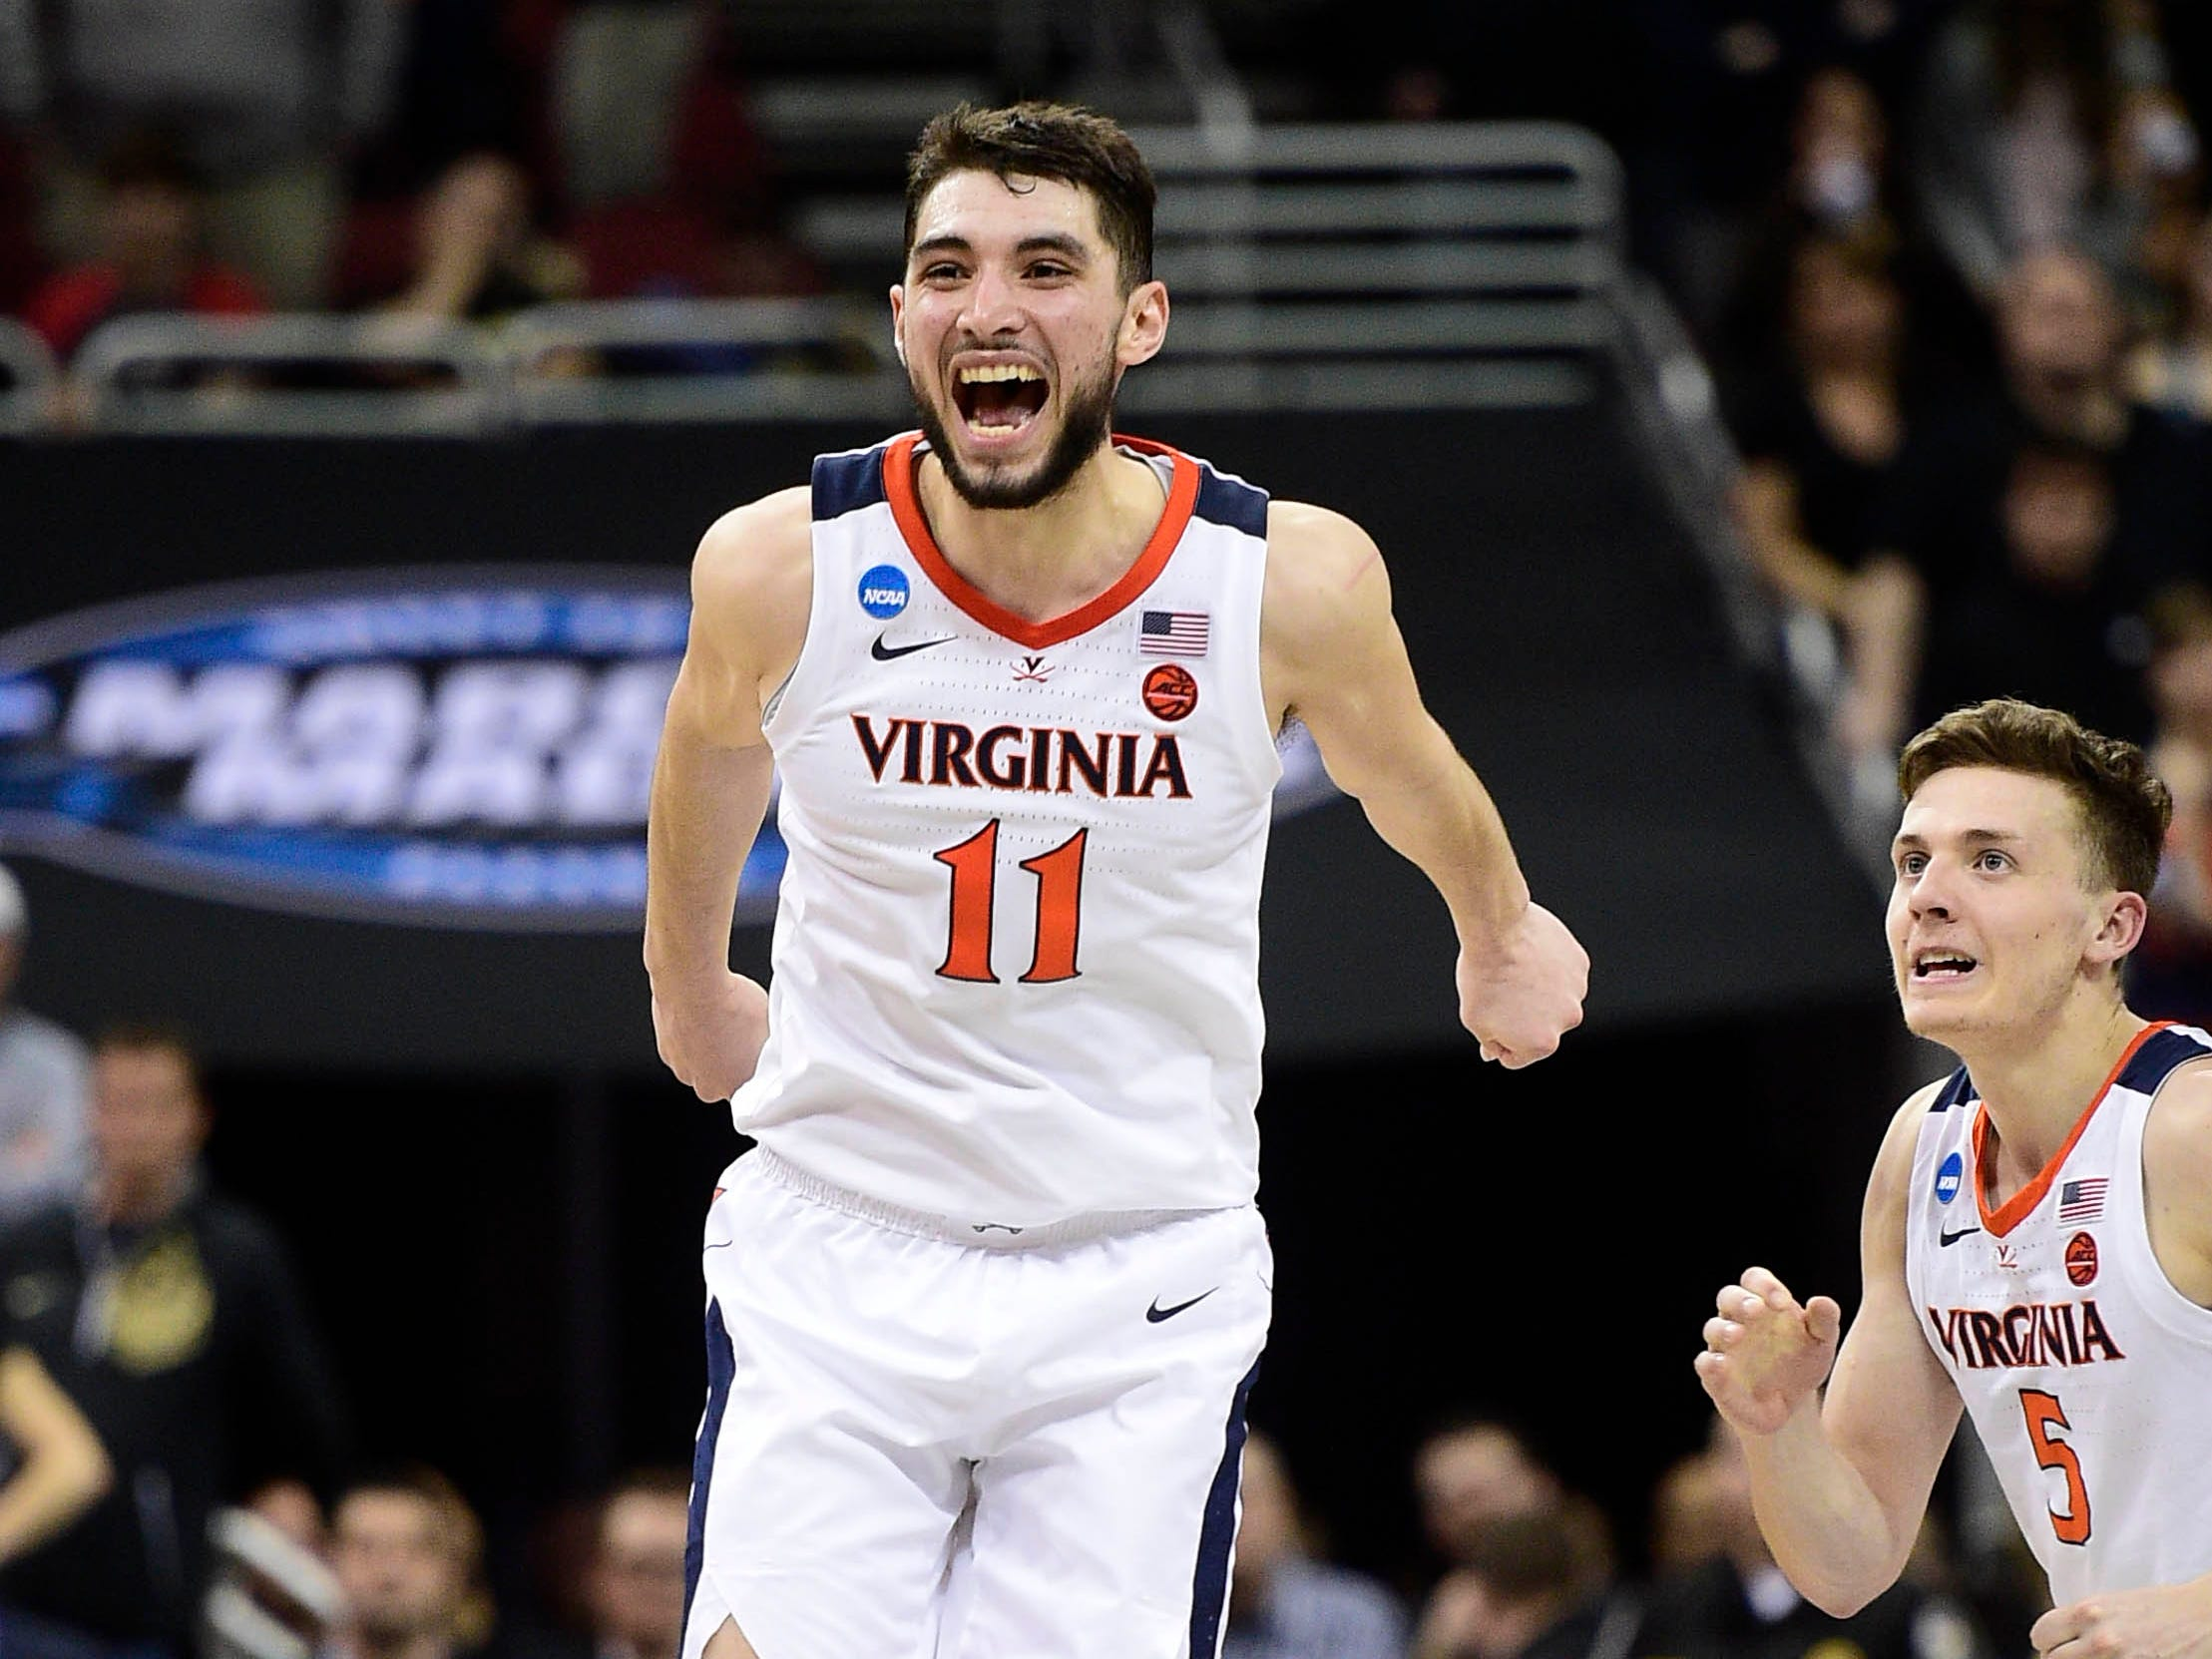 Mar 30, 2019; Louisville, KY, United States; Virginia Cavaliers guard Ty Jerome (11) celebrates with guard Kyle Guy (5) for the win over the Purdue Boilermakers in overtime in the championship game of the south regional of the 2019 NCAA Tournament at KFC Yum Center. Mandatory Credit: Thomas J. Russo-USA TODAY Sports